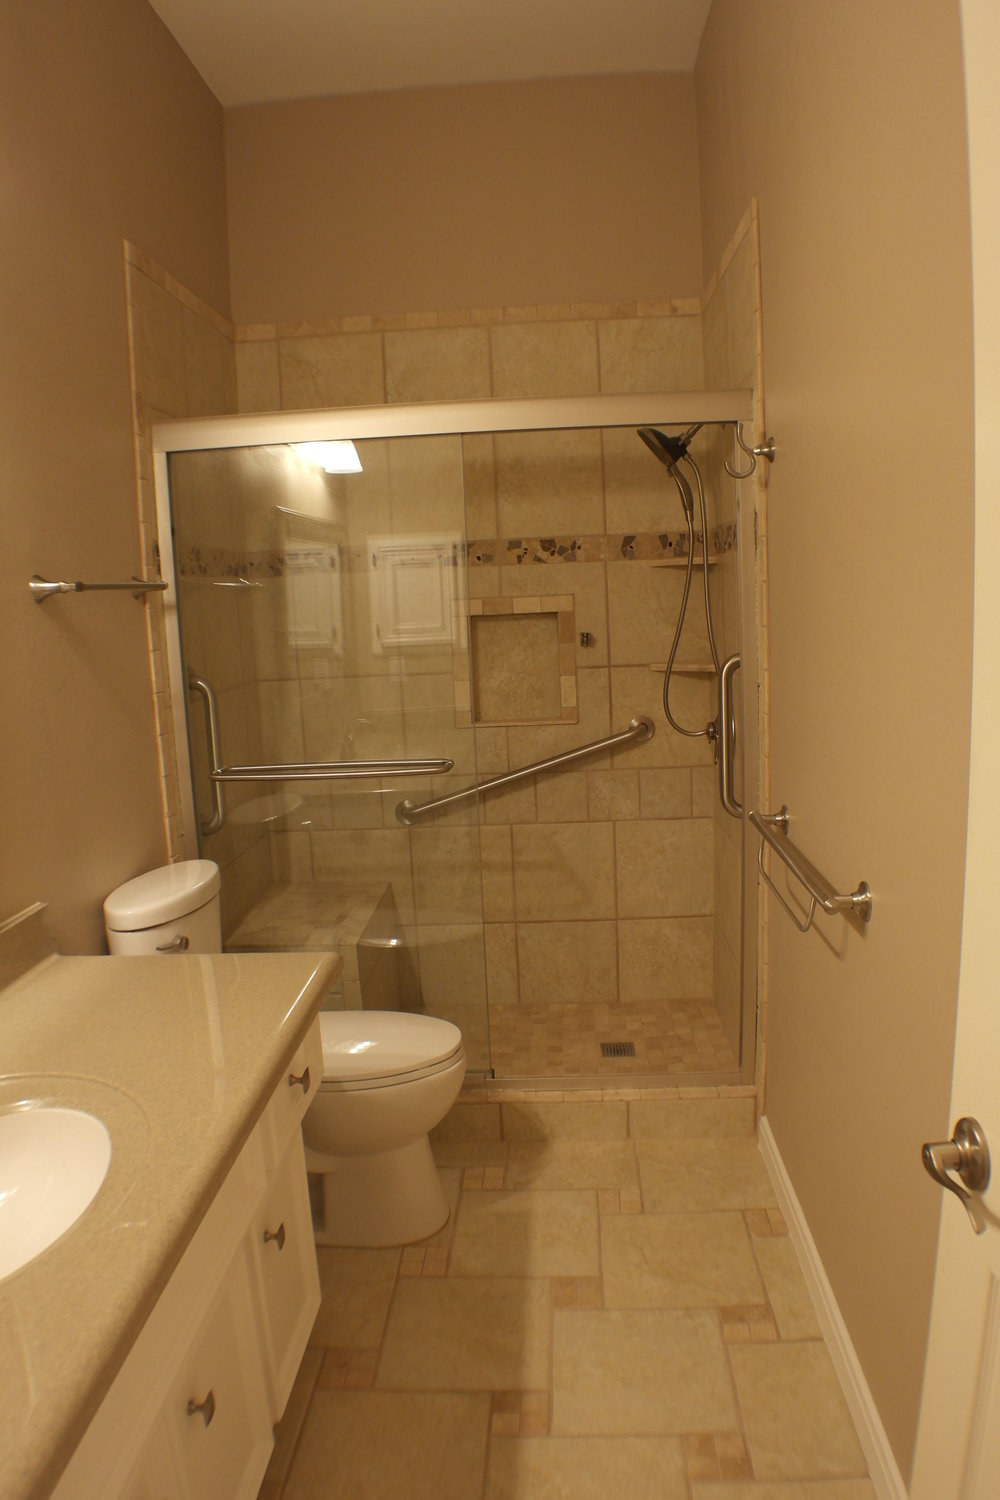 TUBTOSHOWERS CONVERSIONS EZACCESSBATHROOMS.COM 8322028453 COKER 046.JPG